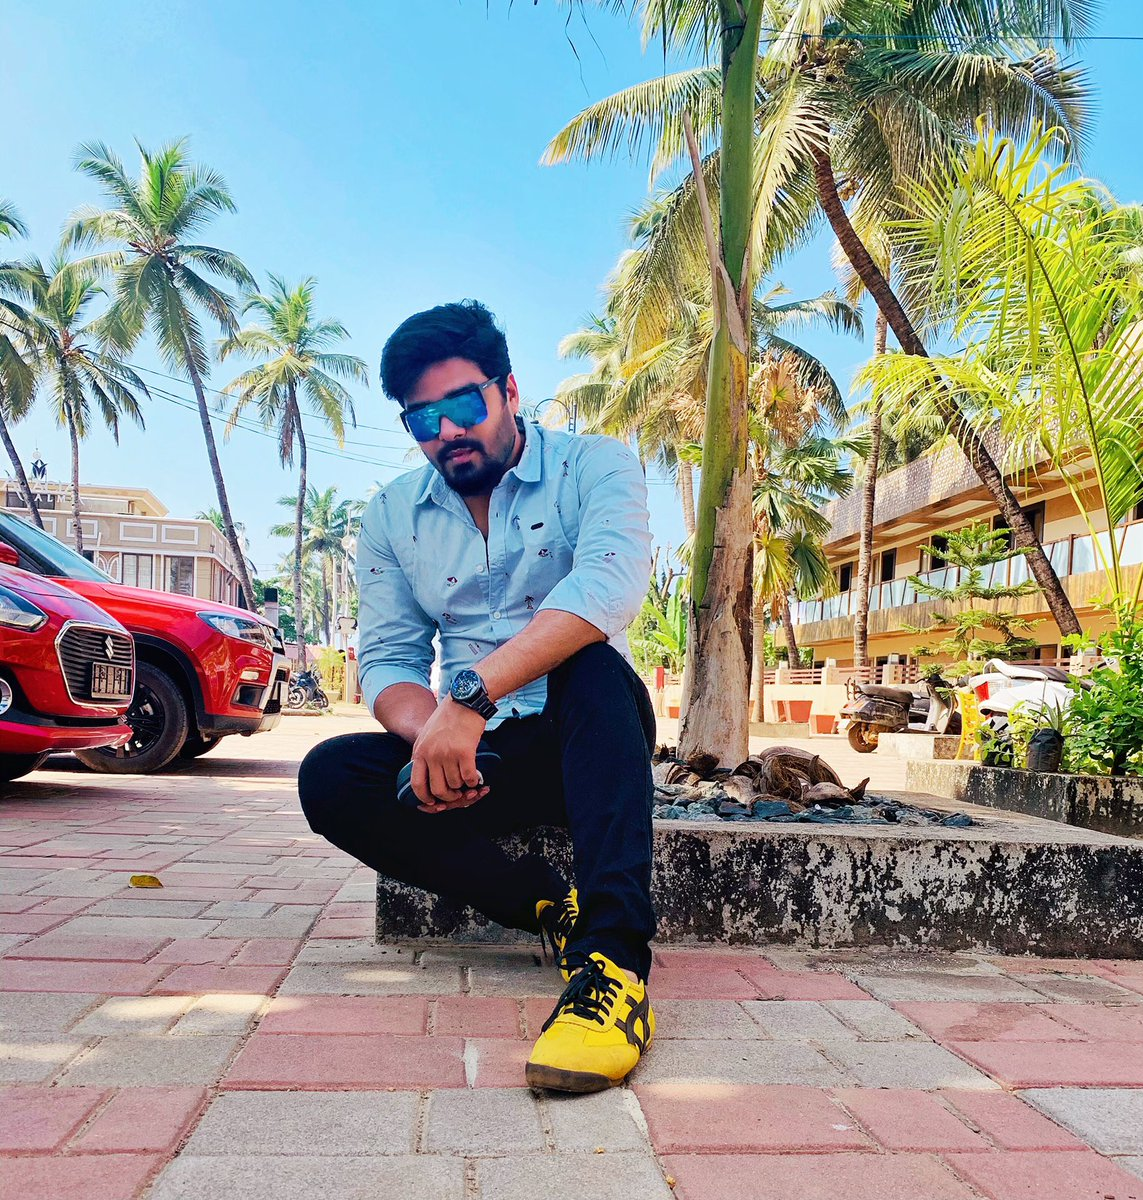 """Be yourself, there's no one better"" #travel #travelphotography #traveling #destination #life #lifestyle #colvabeach #goa #goadiaries #me #instagood #instamood #exclusive #exclusive_shots #newyear #post #dailypost #picoftheday #photooftheday #tbt #likesforlike #followforfollow"